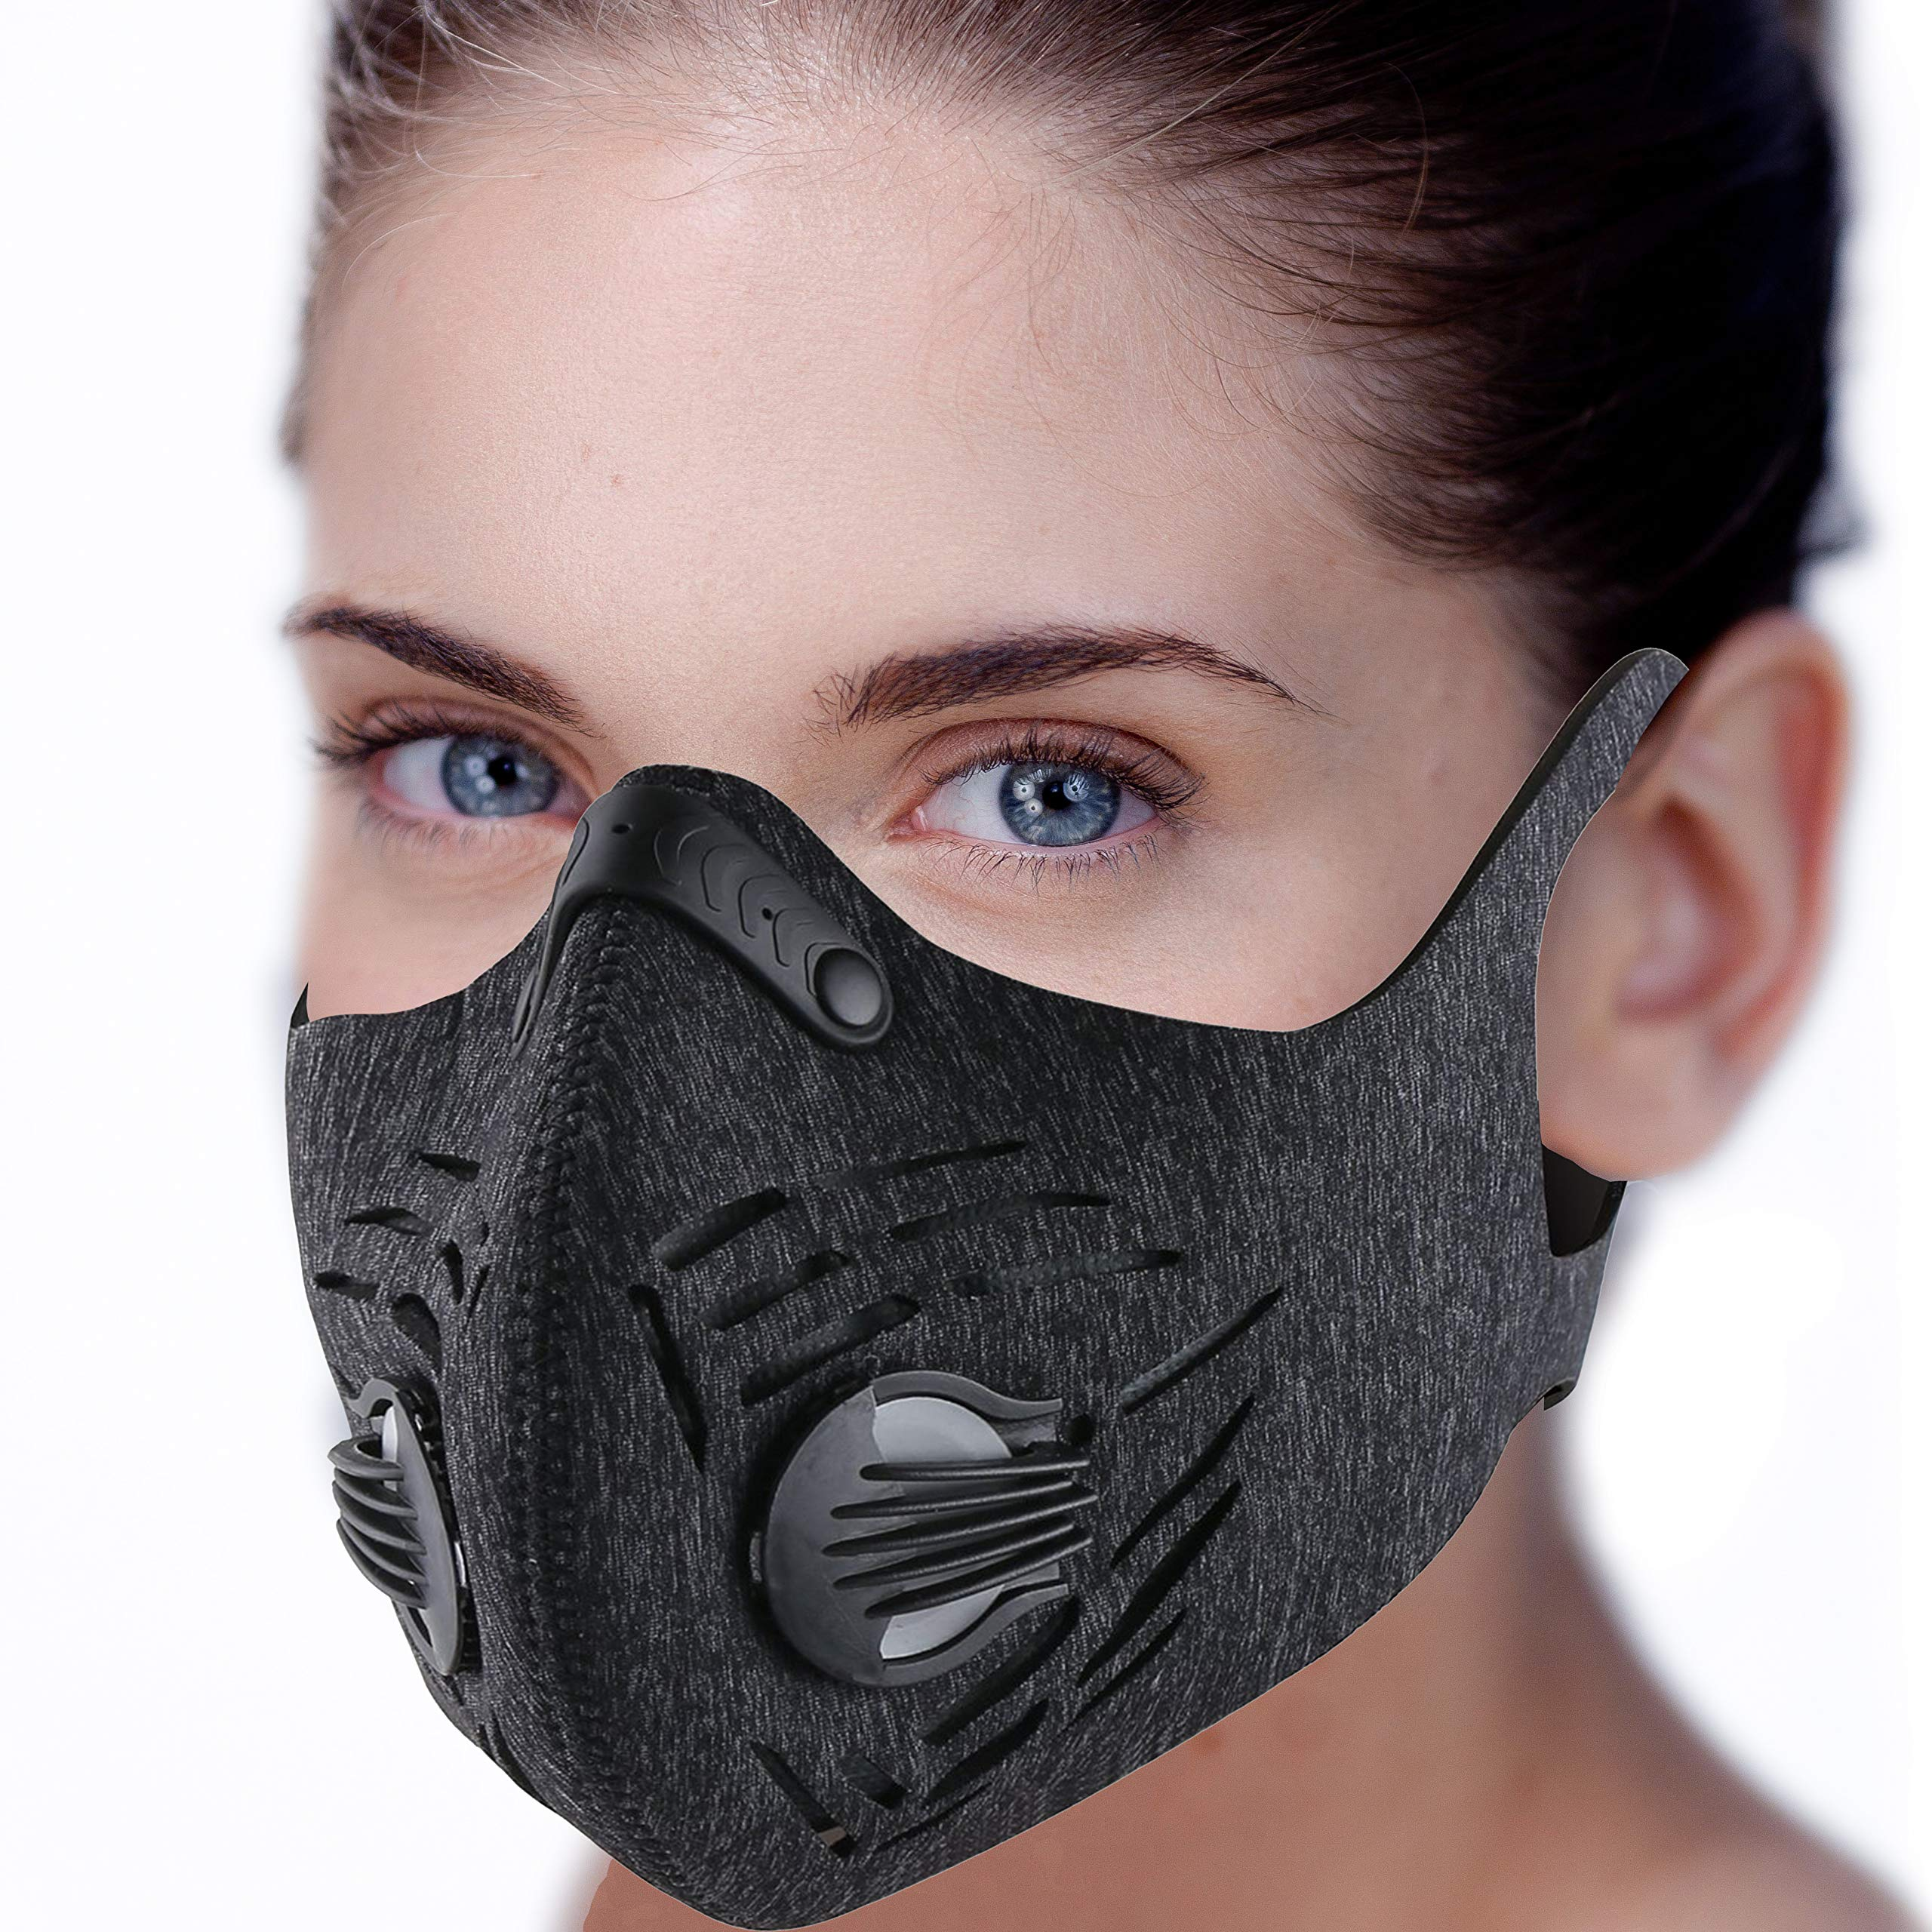 Dust Mask, RooRuns Dustproof Mask (with Ear-loop) Activated Carbon Filtration Exhaust Anti Pollen Allergy PM2.5 Dust-proof Mask for Running, Woodworking, House Cleaning, Gardening and Other Activities